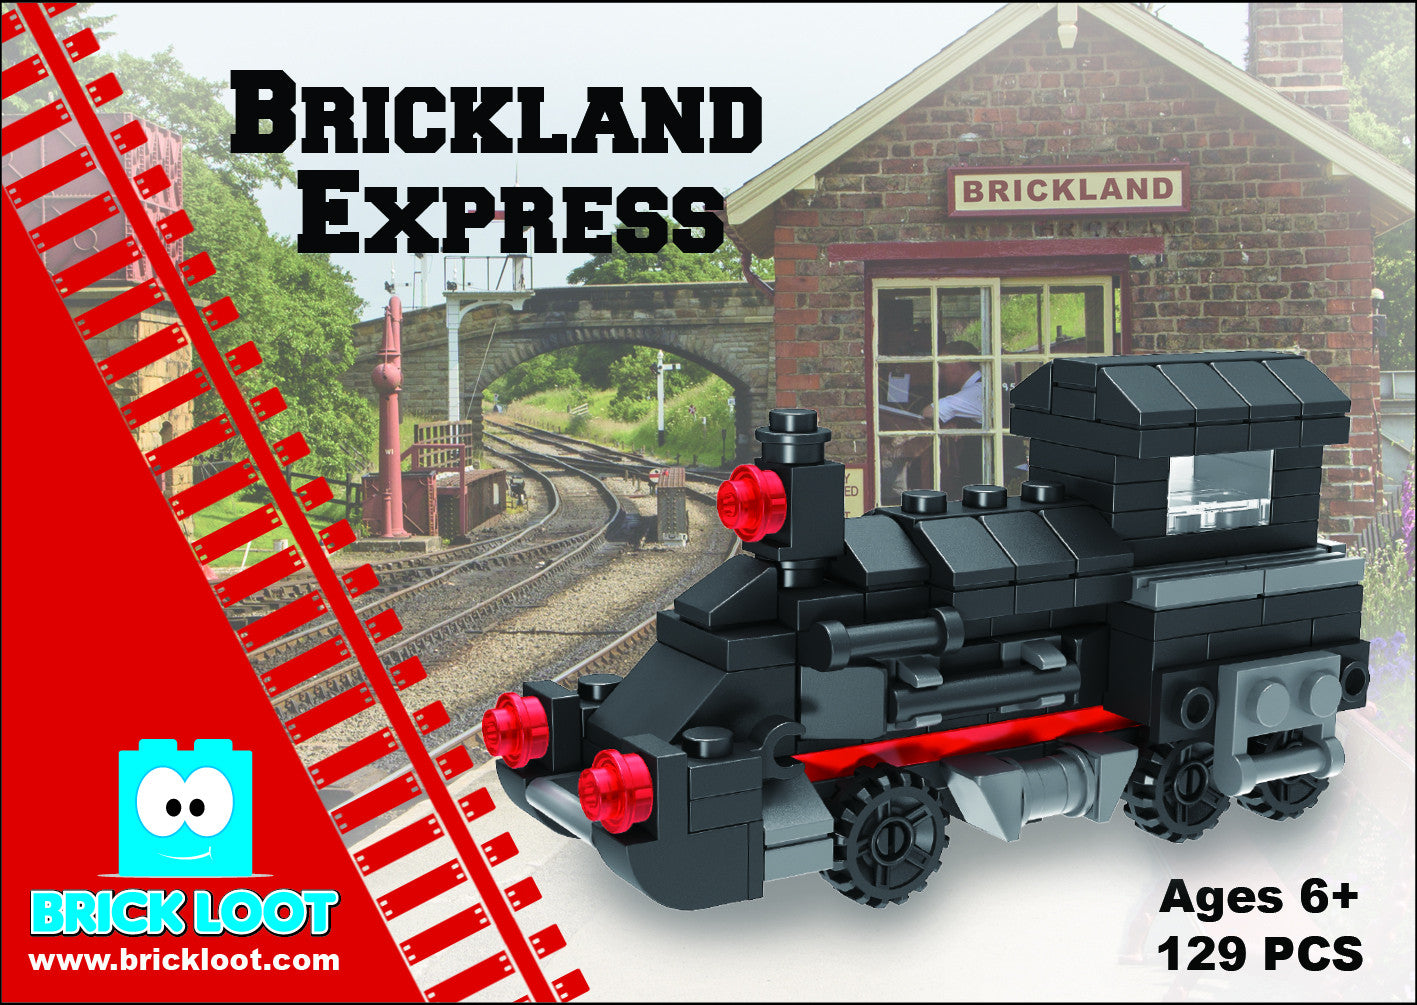 Brickland Express Train Set - Retail Boxed